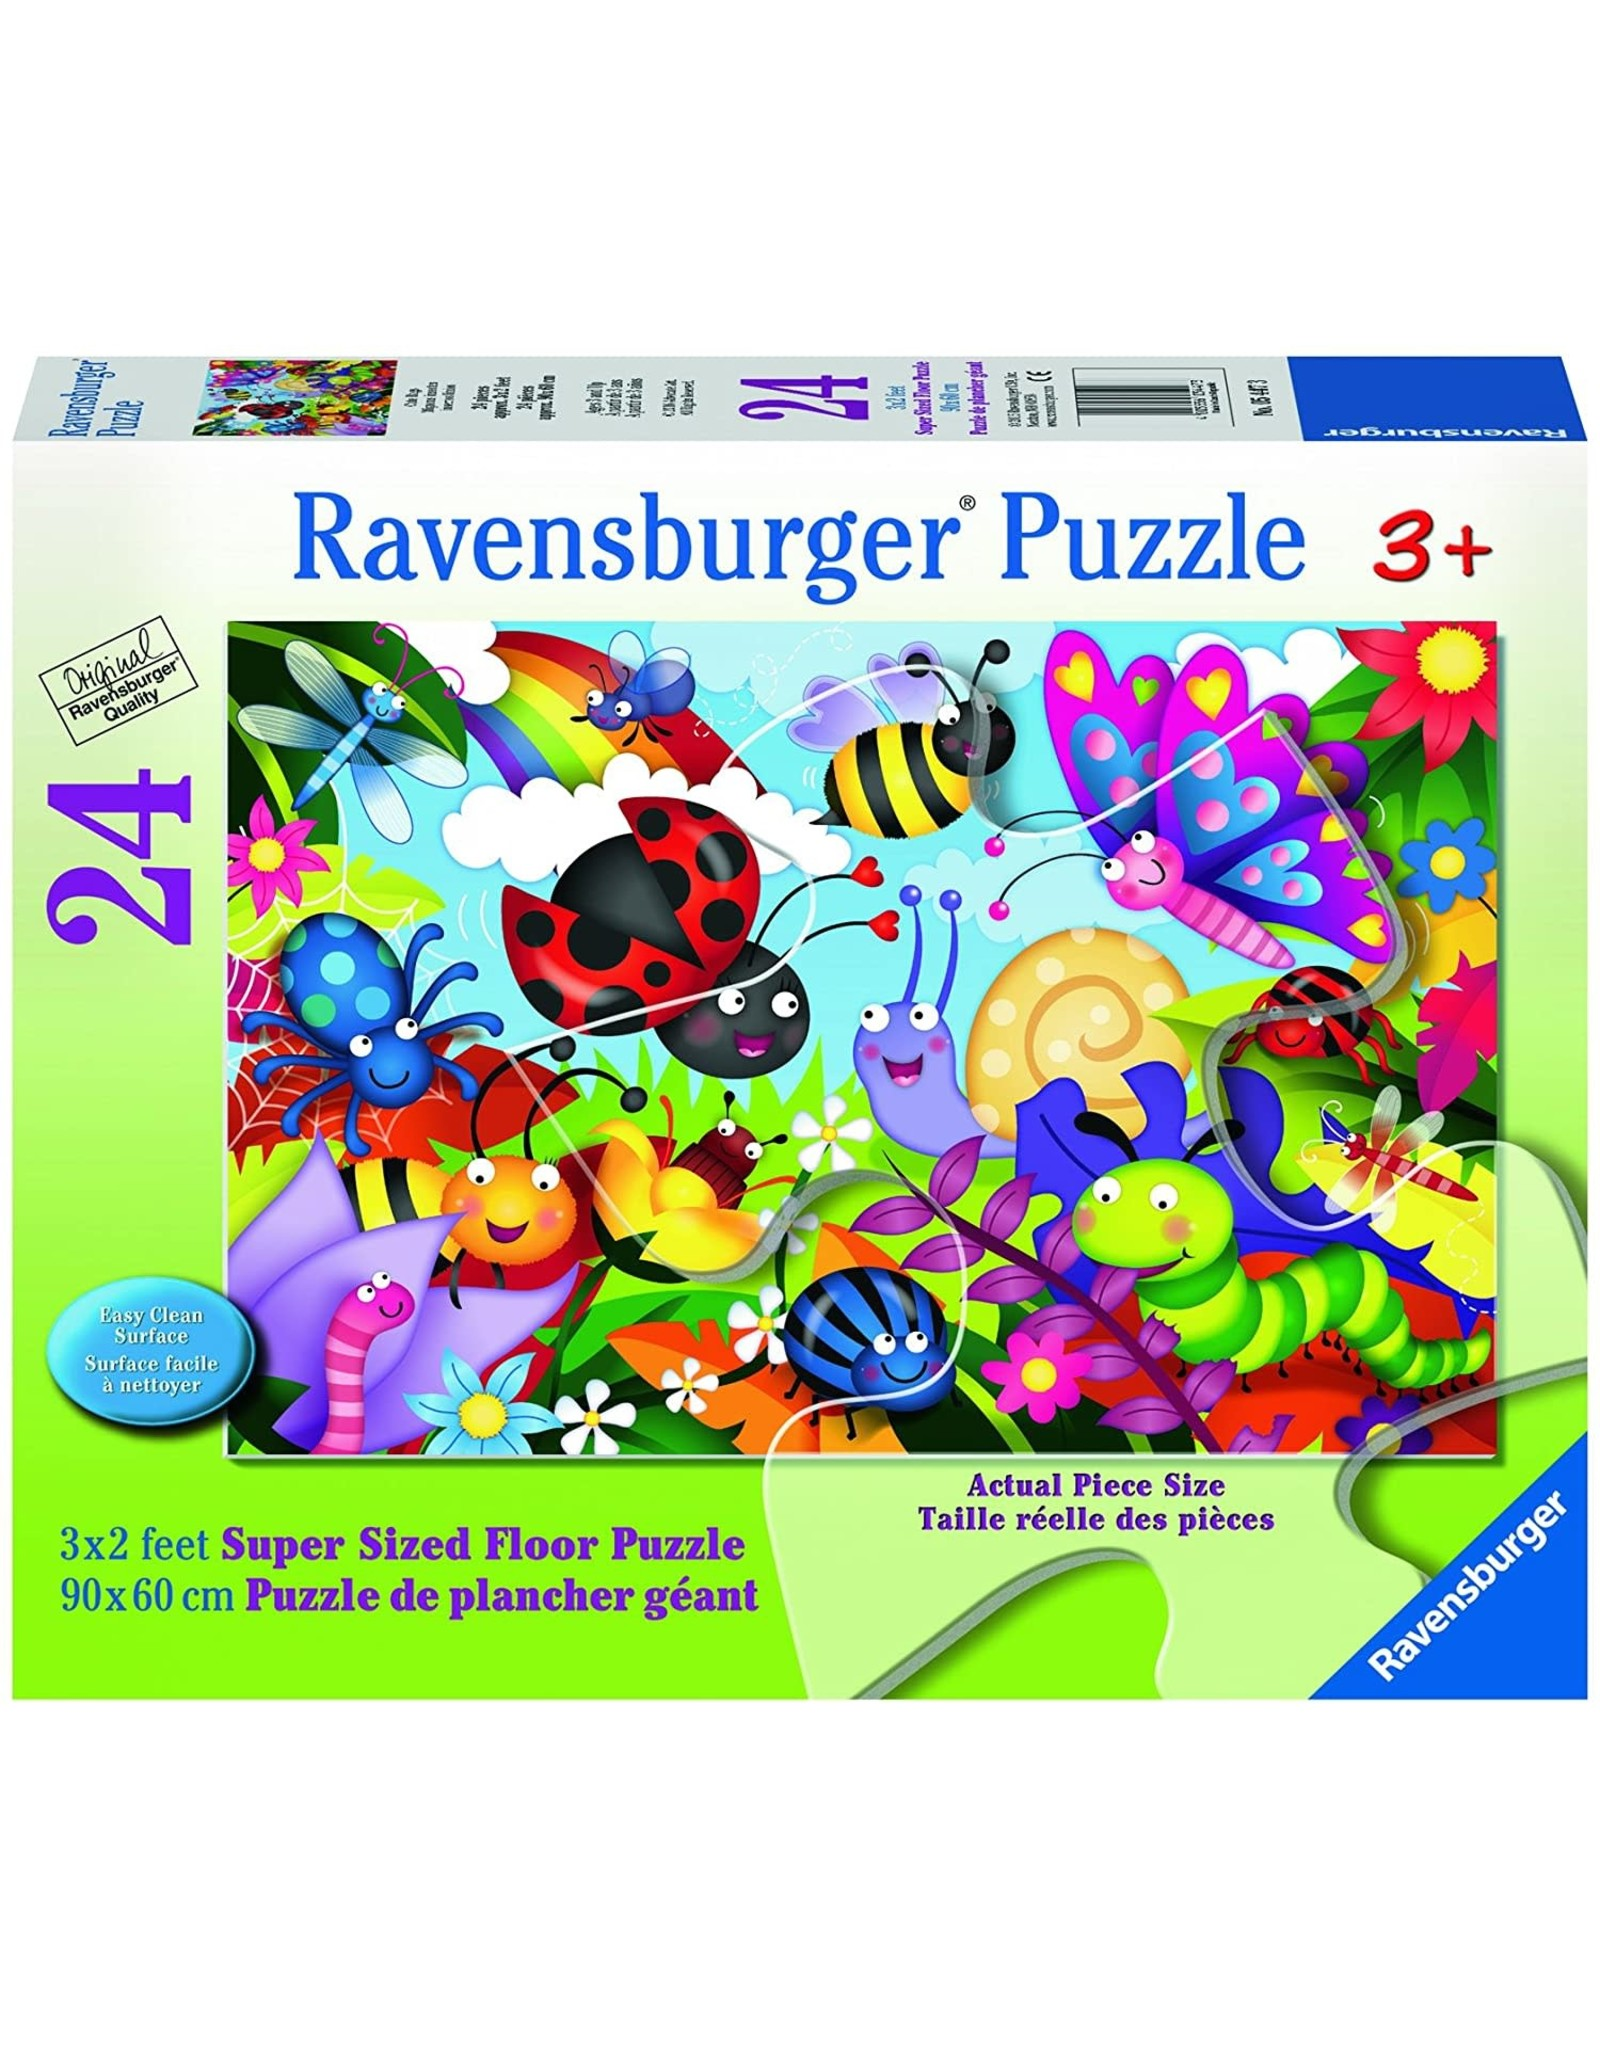 Ravensburger Cute Bugs 24 pc Floor Puzzle